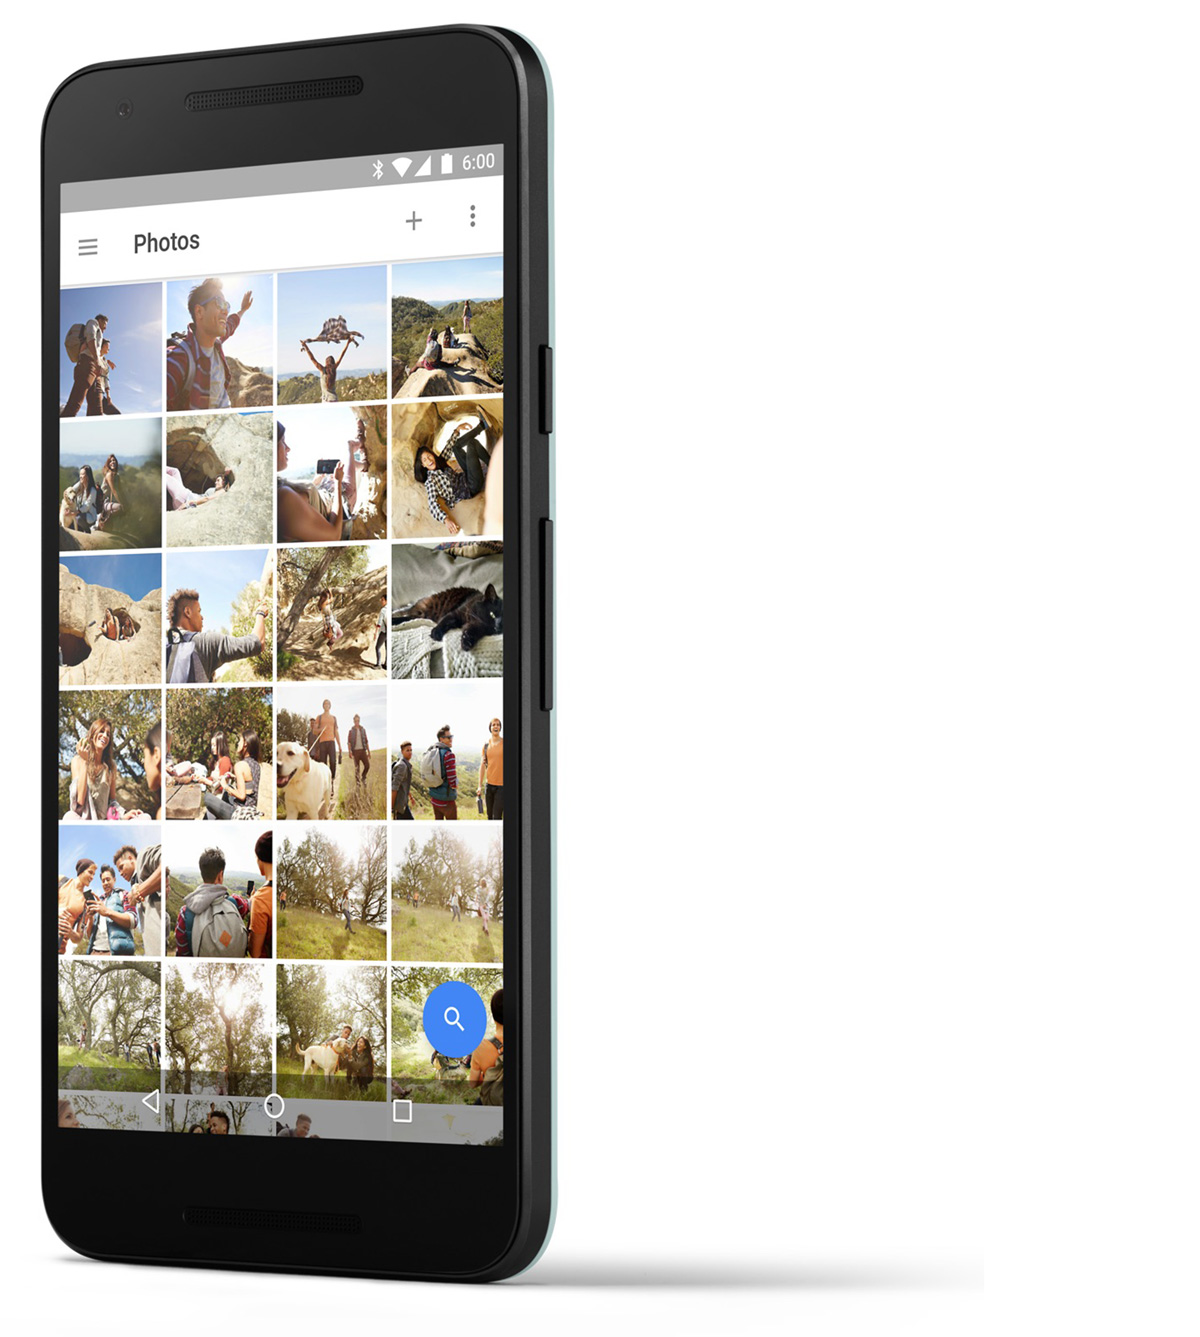 LG Nexus 5X 16GB 4G Black All your photos, organized and easy to find